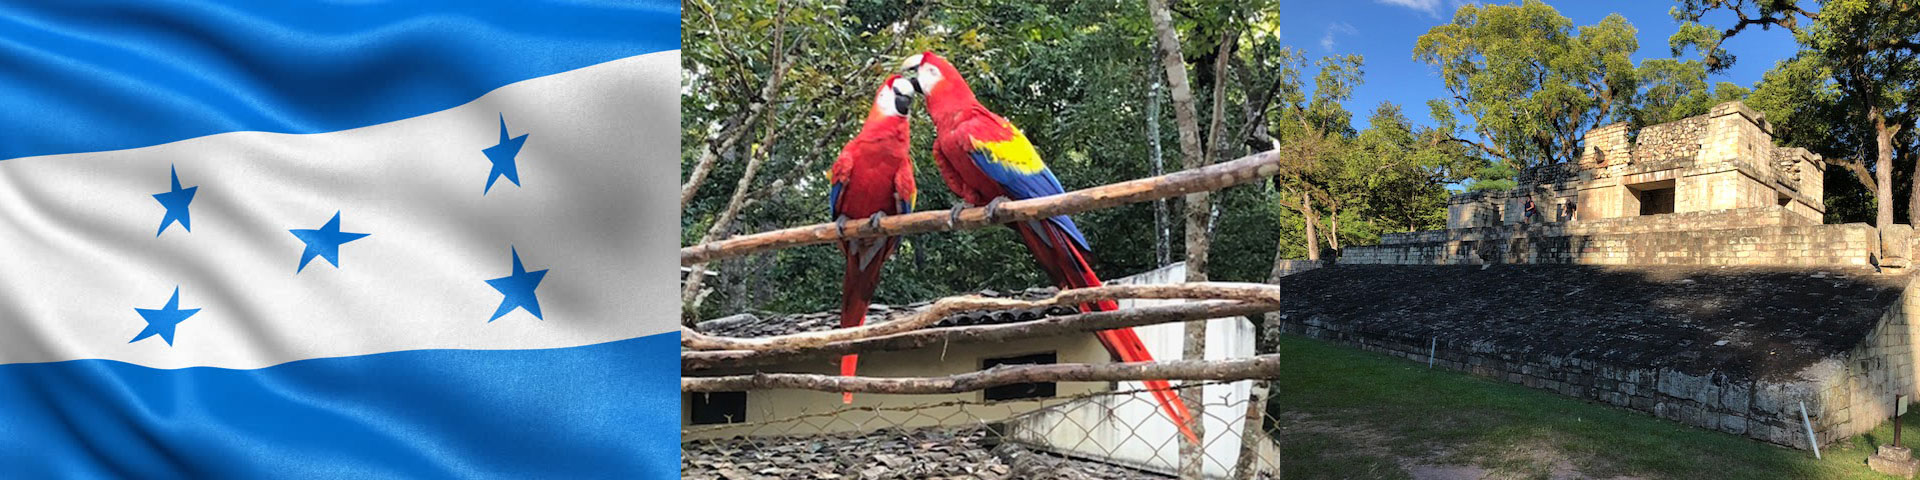 Honduran Flag, Scarlet Macaws, and Mayan Ruins in Copan